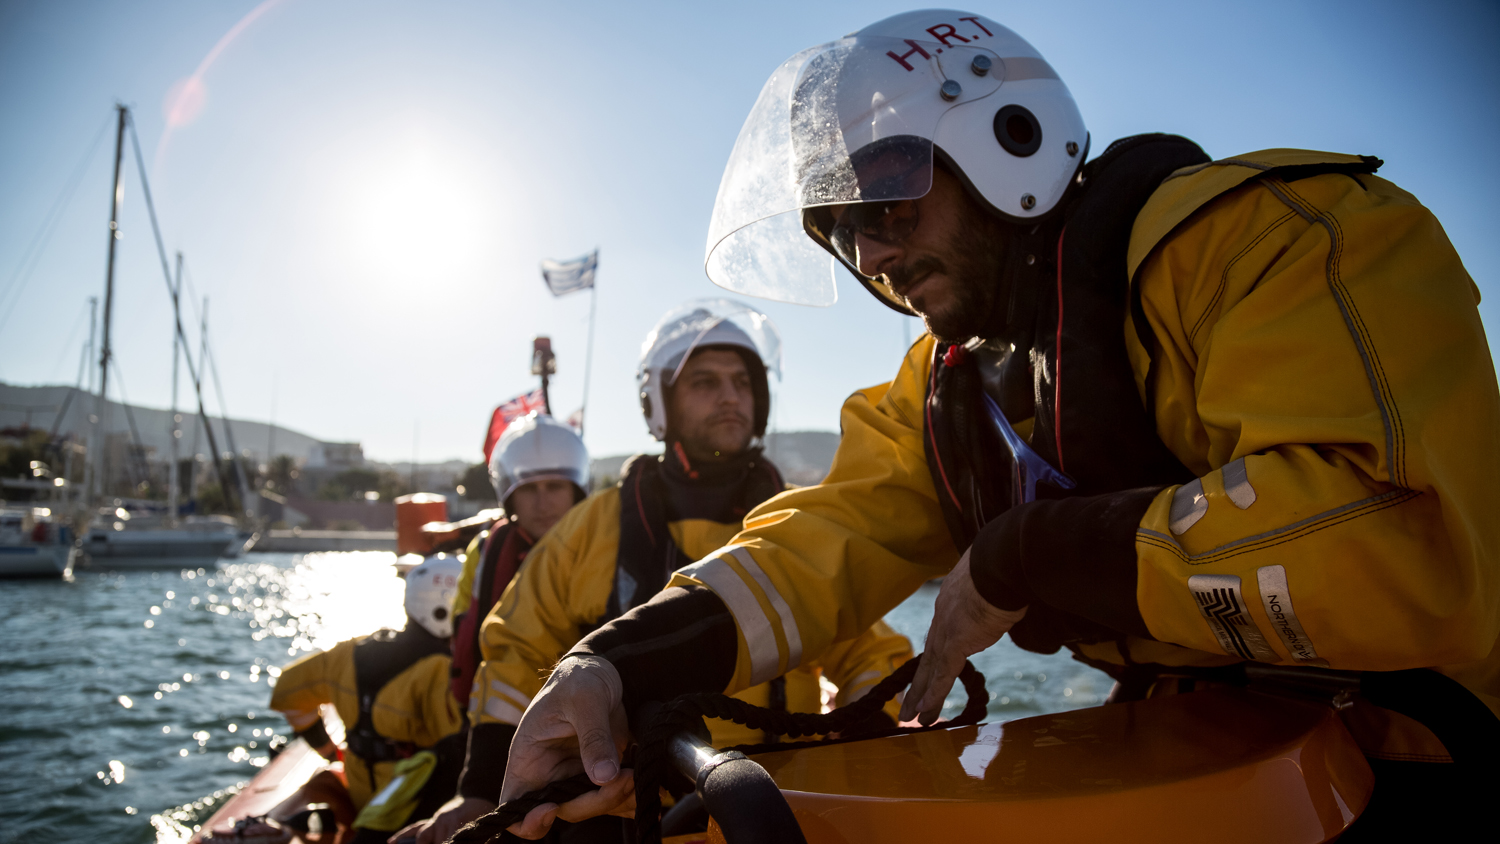 Hellenic Rescue Team crew onboard their inshore lifeboat